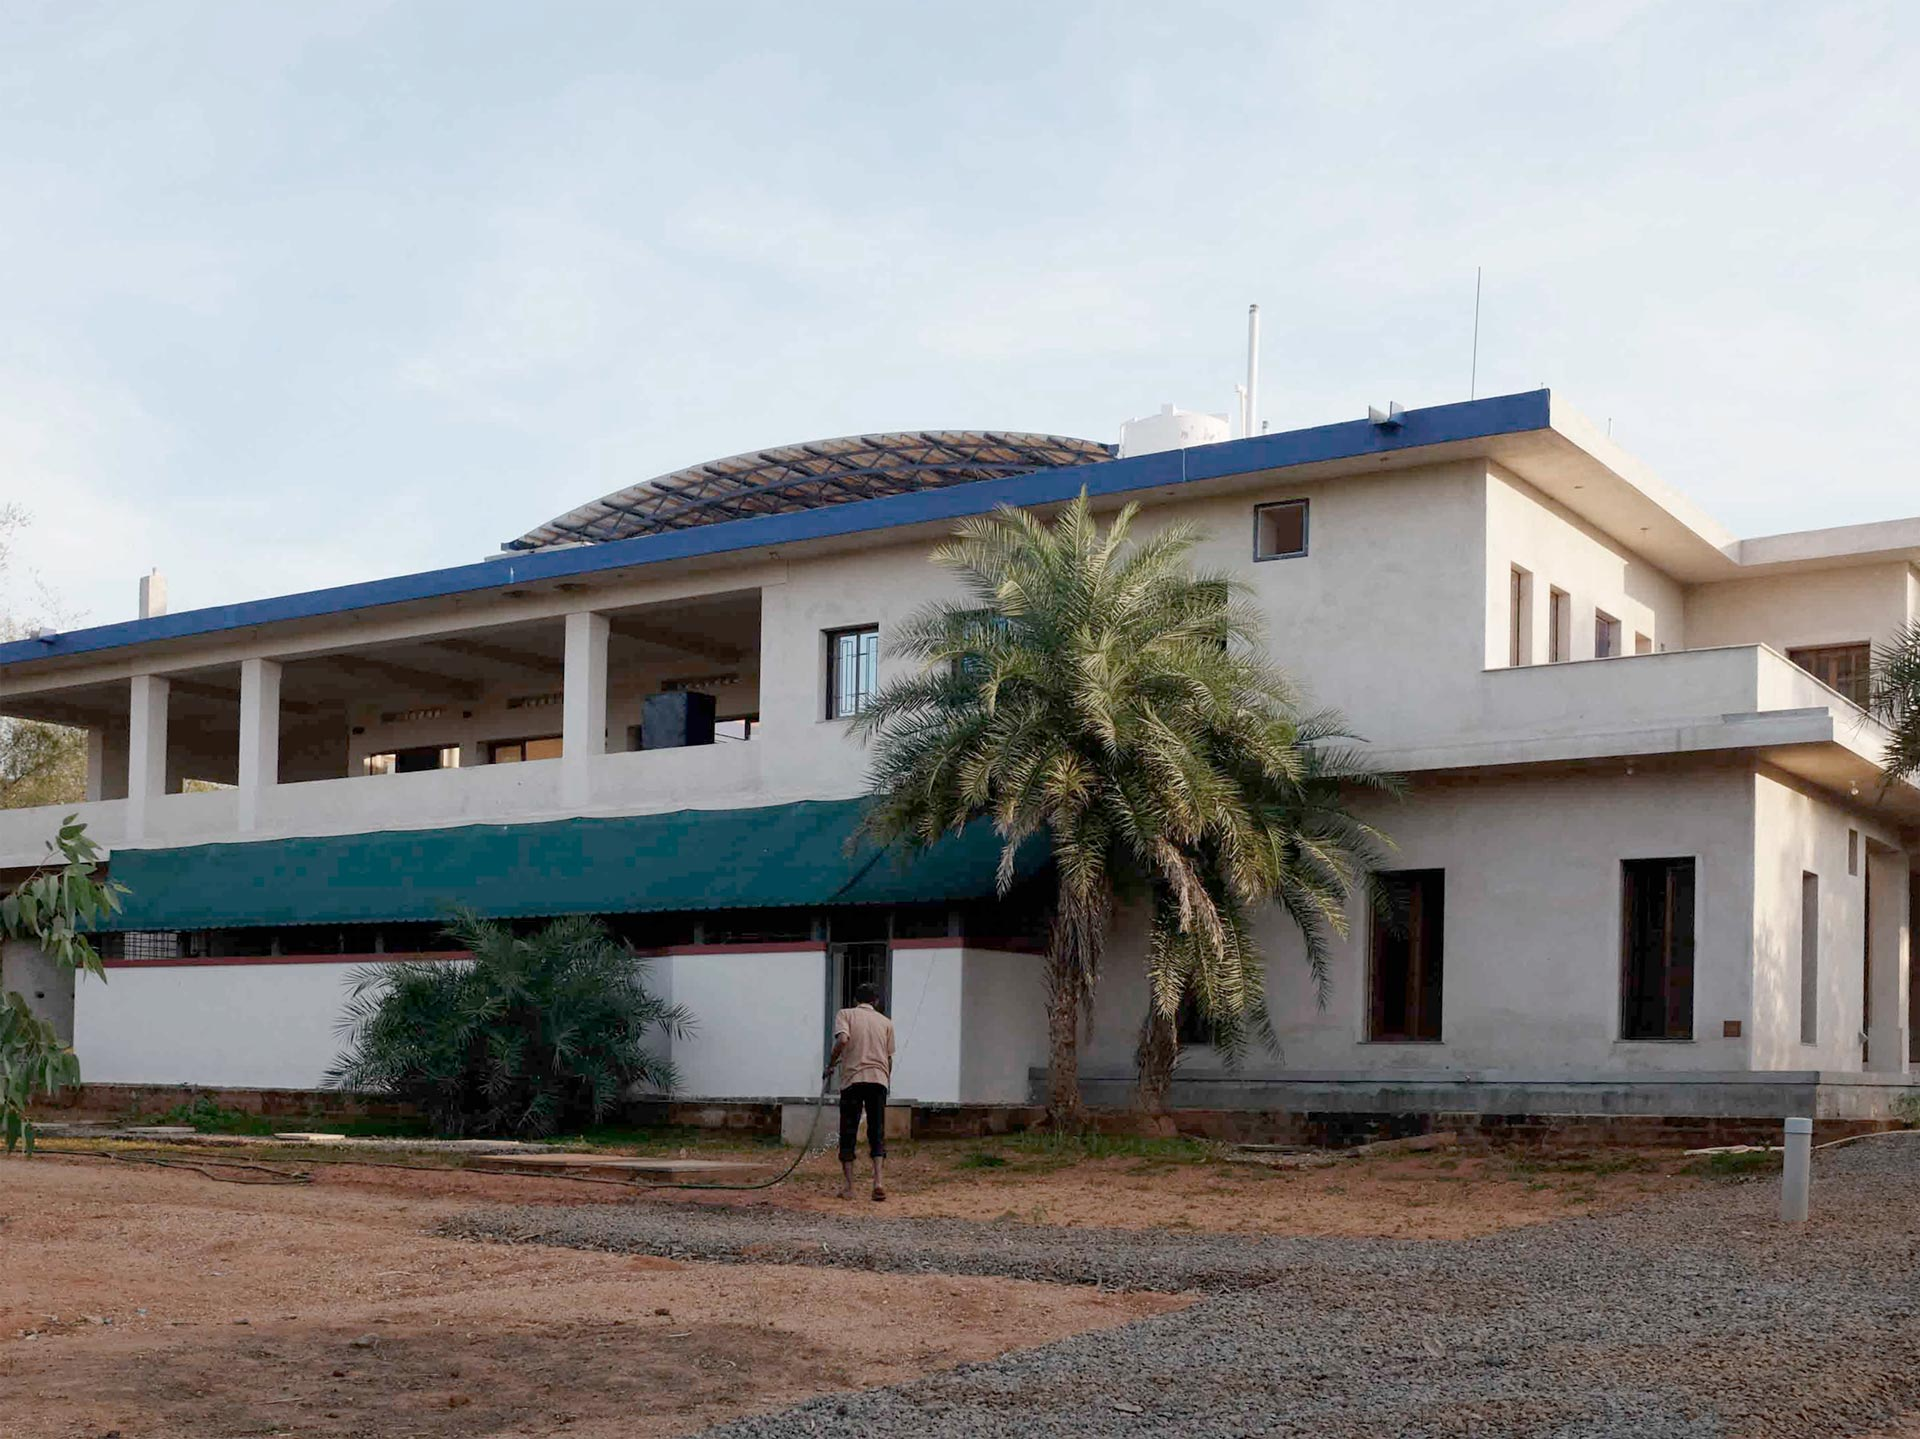 Completion Language Lab and Tomatis Research Centre